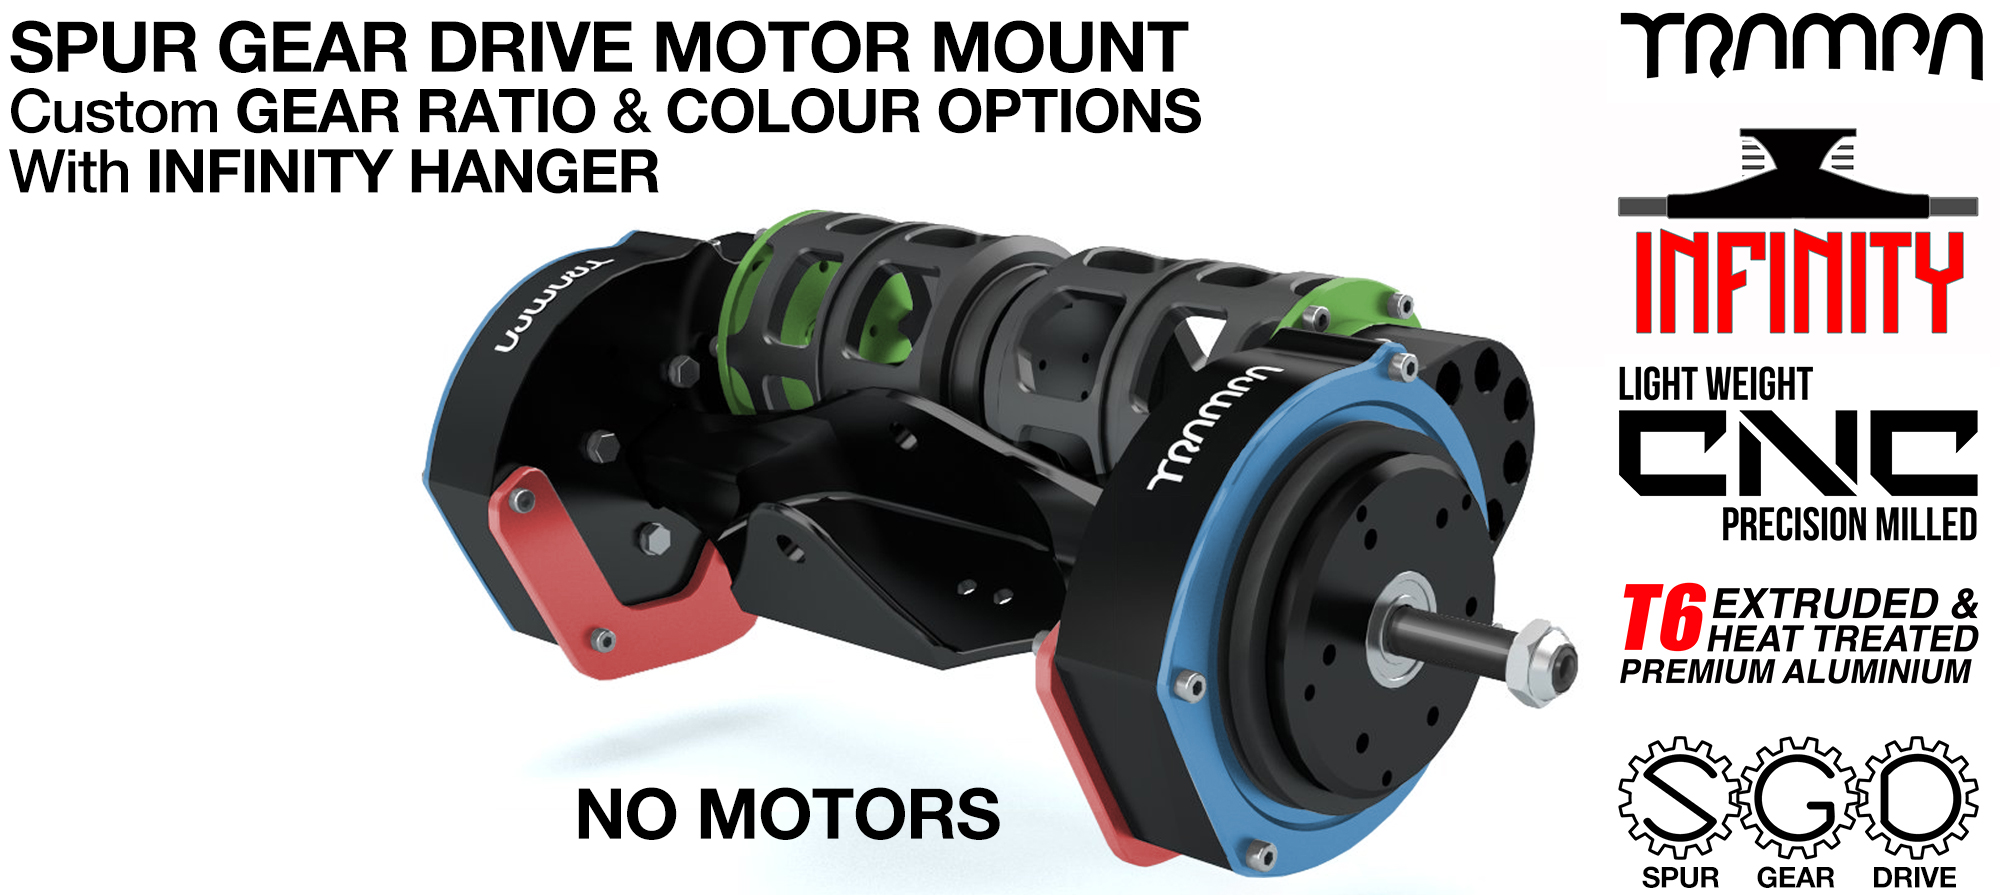 Mountainboard Spur Gear Drive TWIN Motor Mounts & INFINITY Hanger